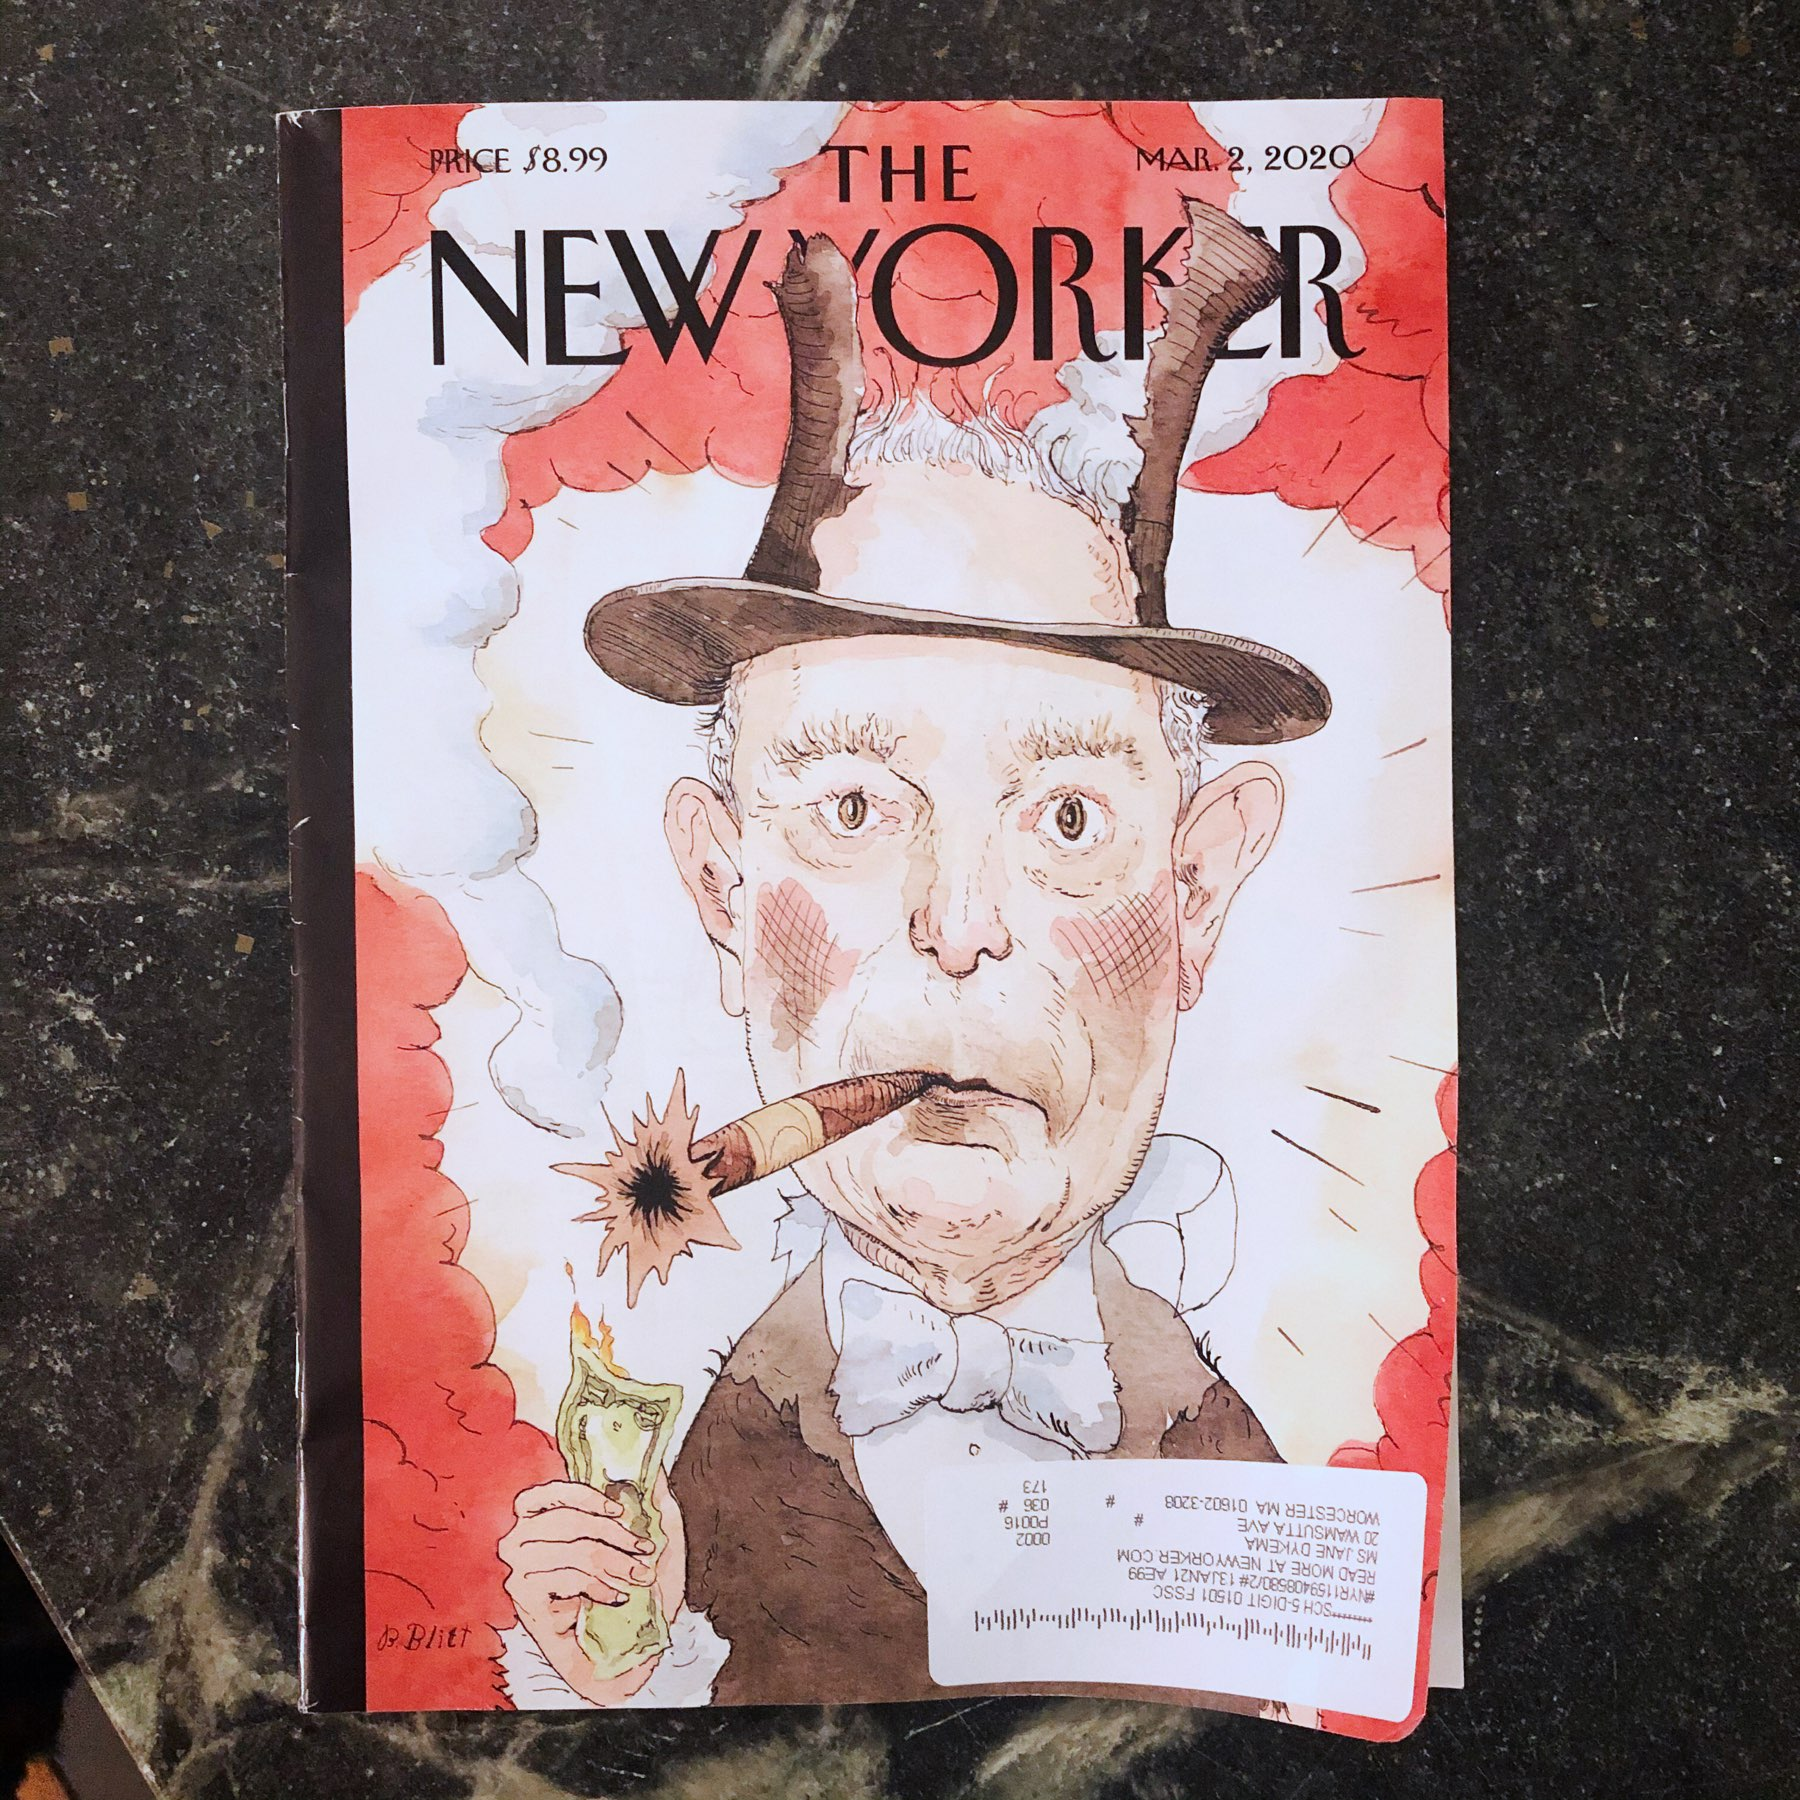 Bloomberg on cover of New Yorker